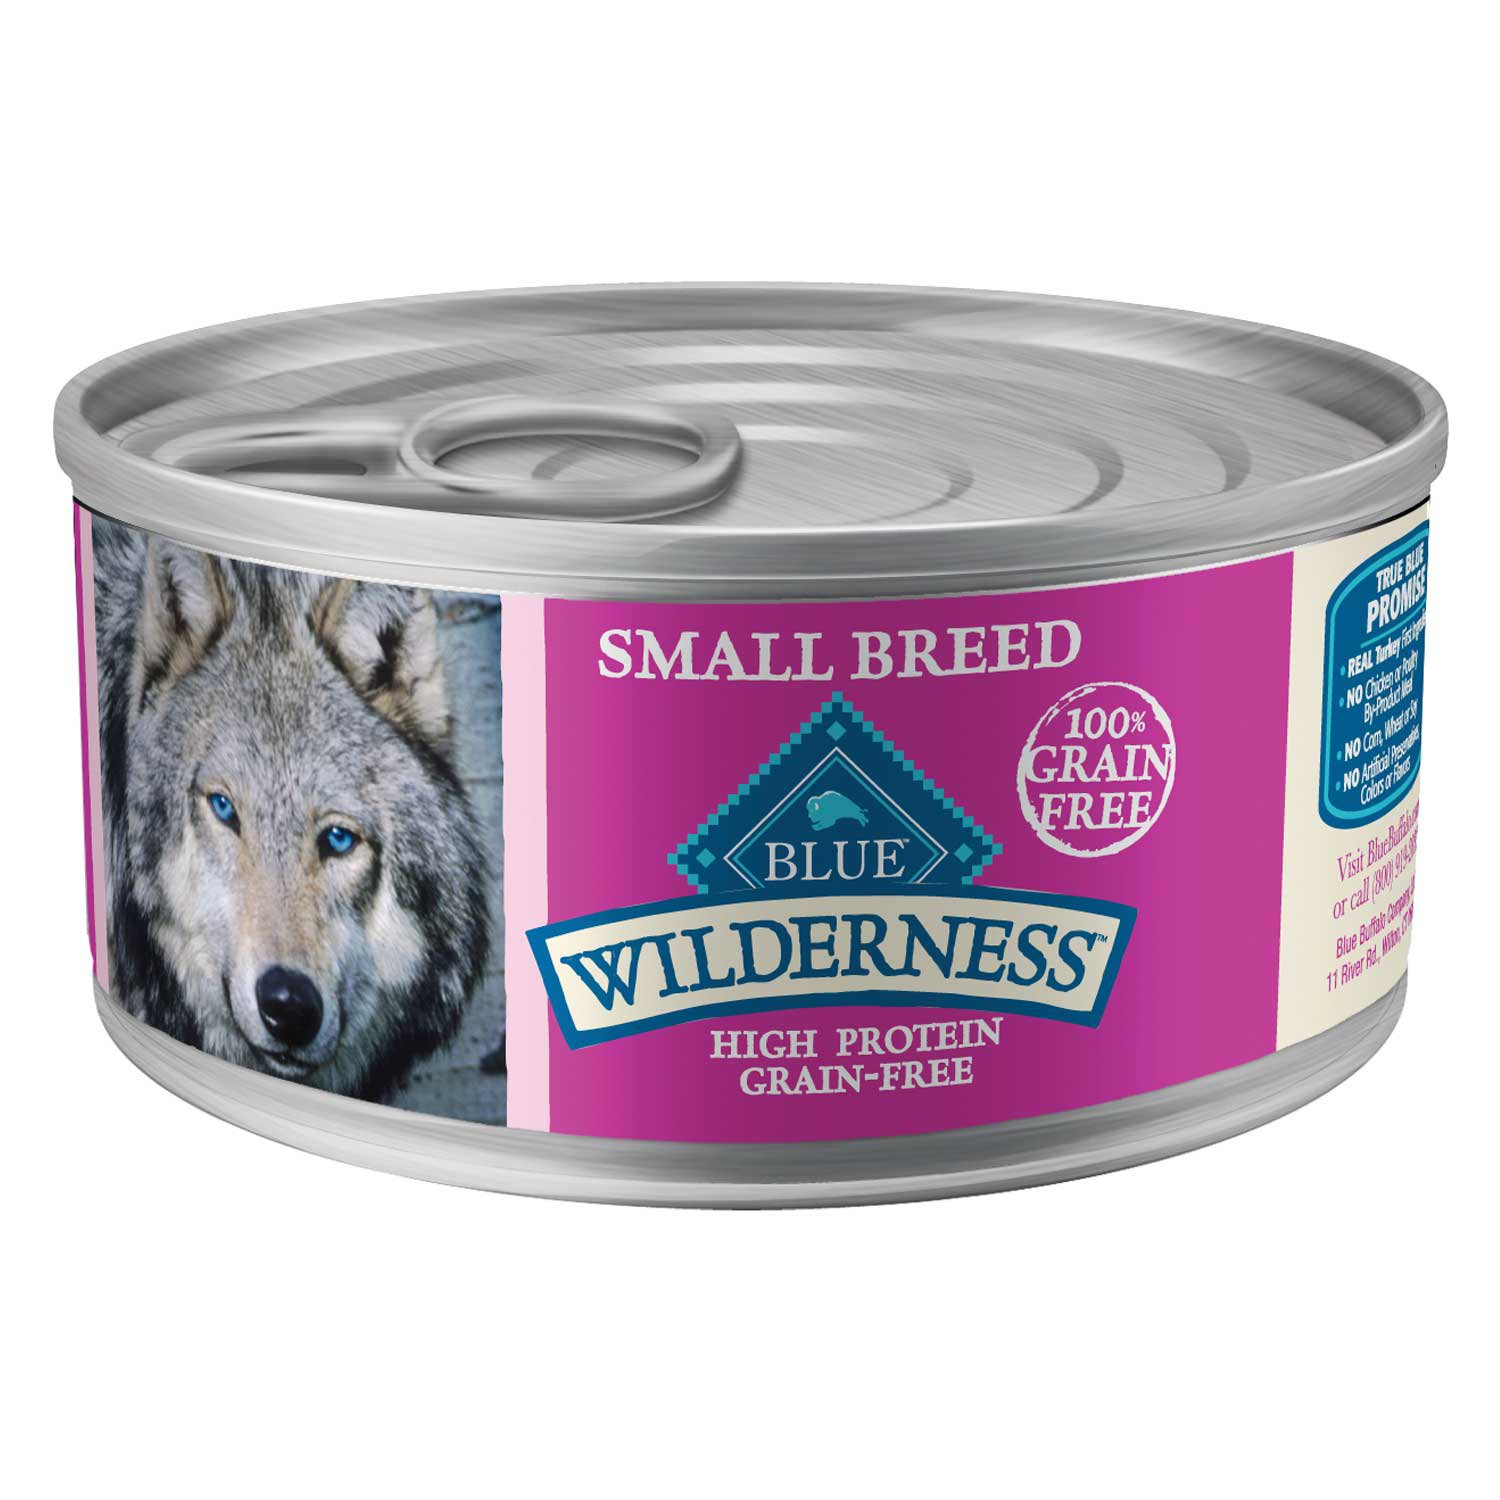 Blue Wilderness Small Dog Food